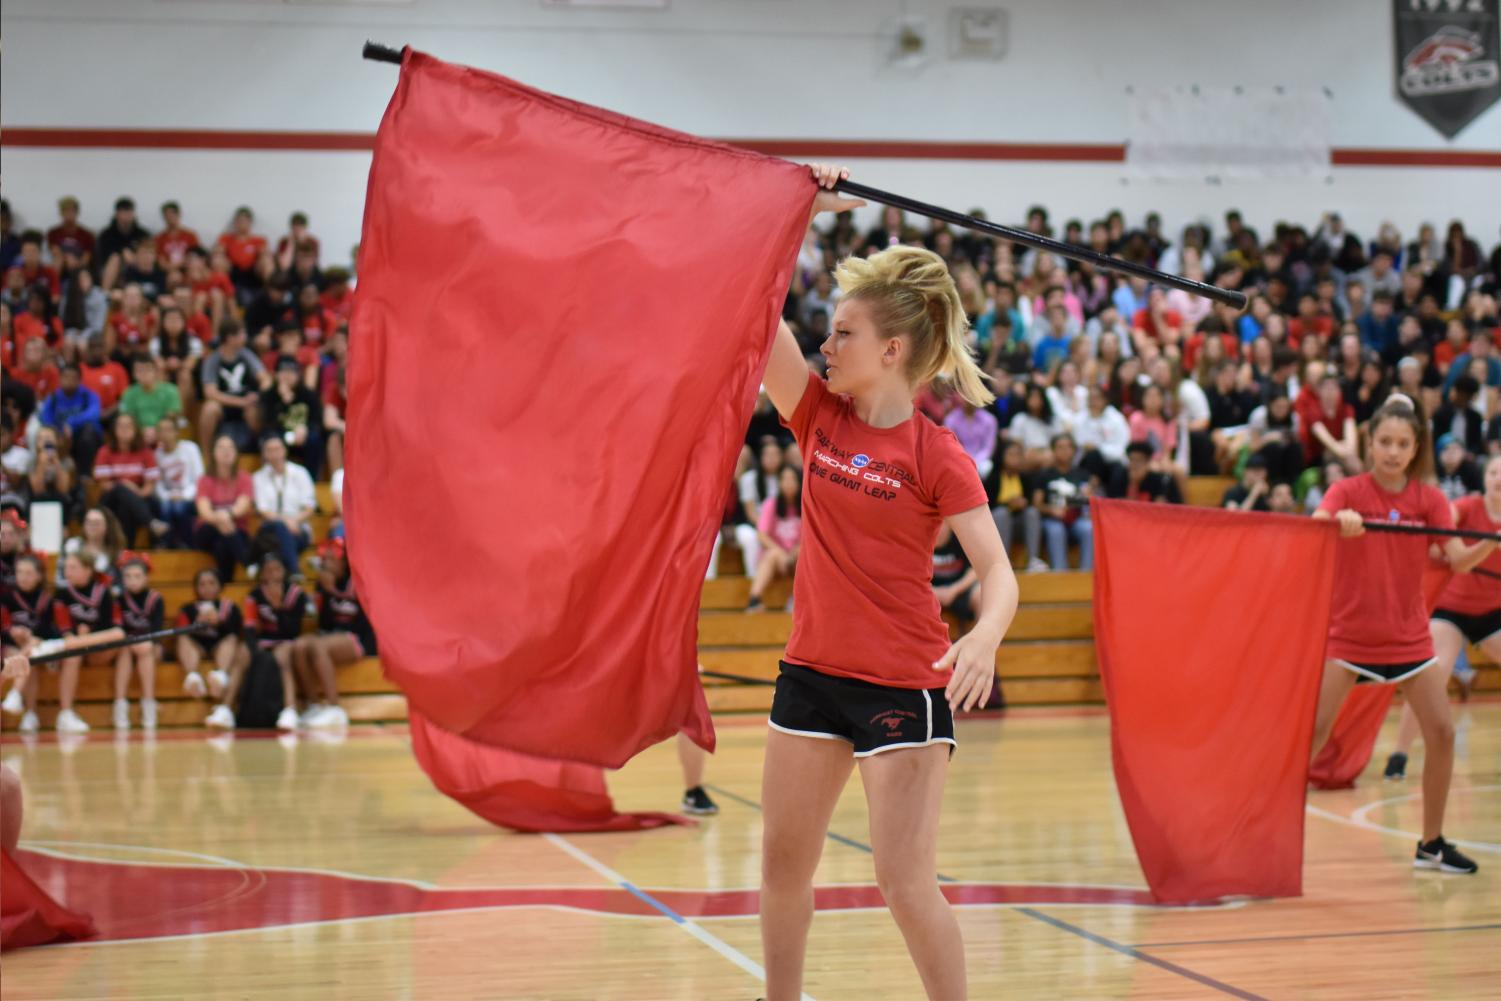 Senior Tristan Duggan spins her flag at the homecoming pep rally. Photo by Christine Stricker